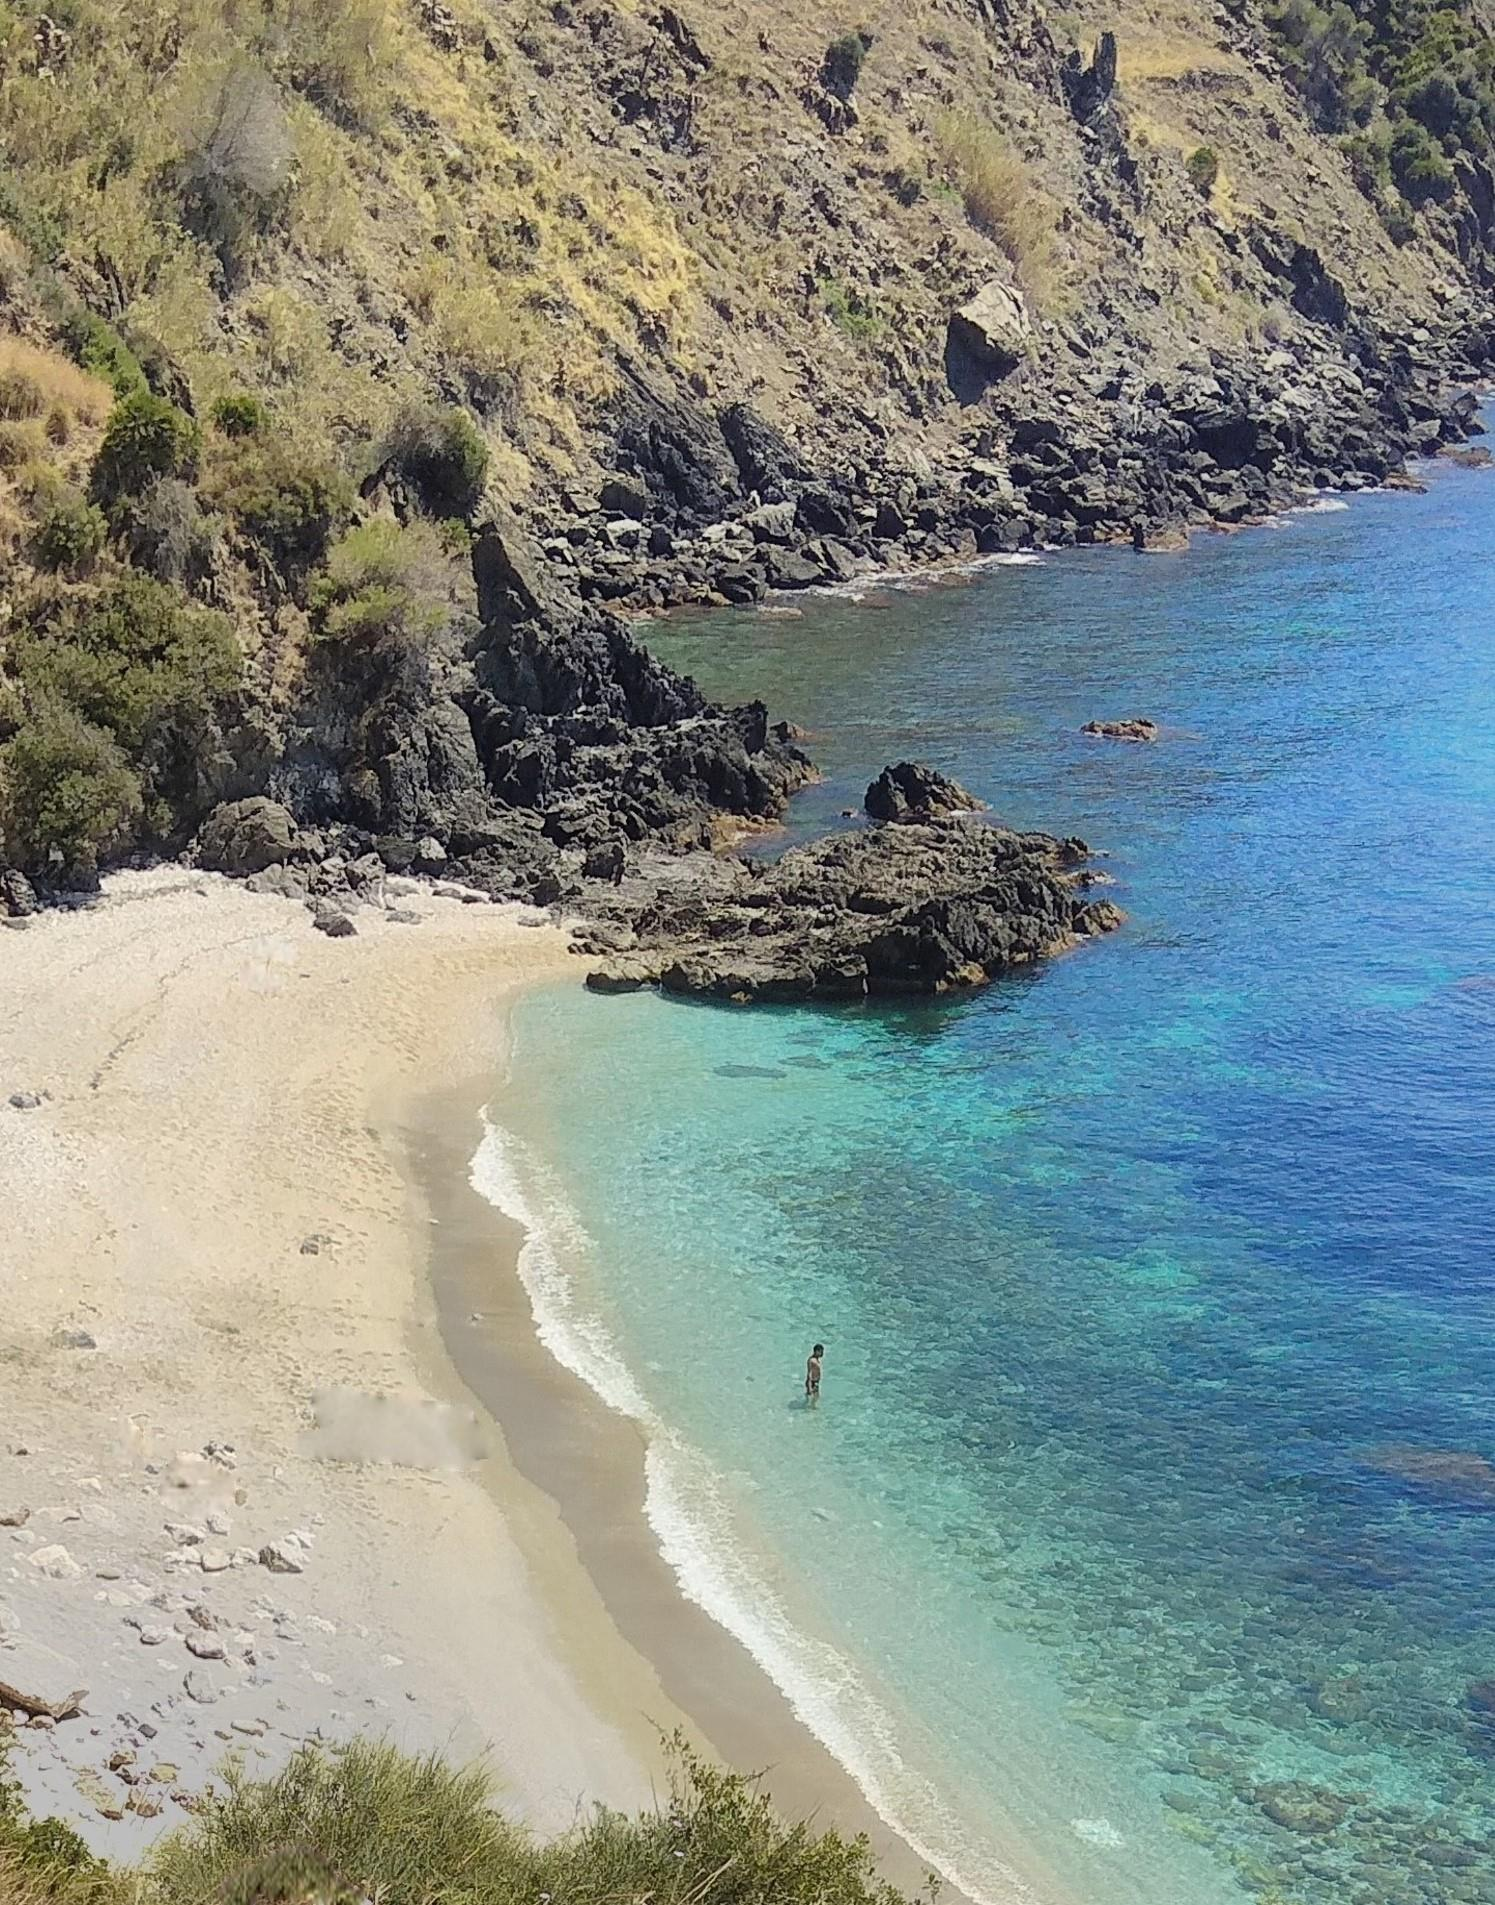 Tropical-hike,-paradisiacal-beach-and-snorkeling-2